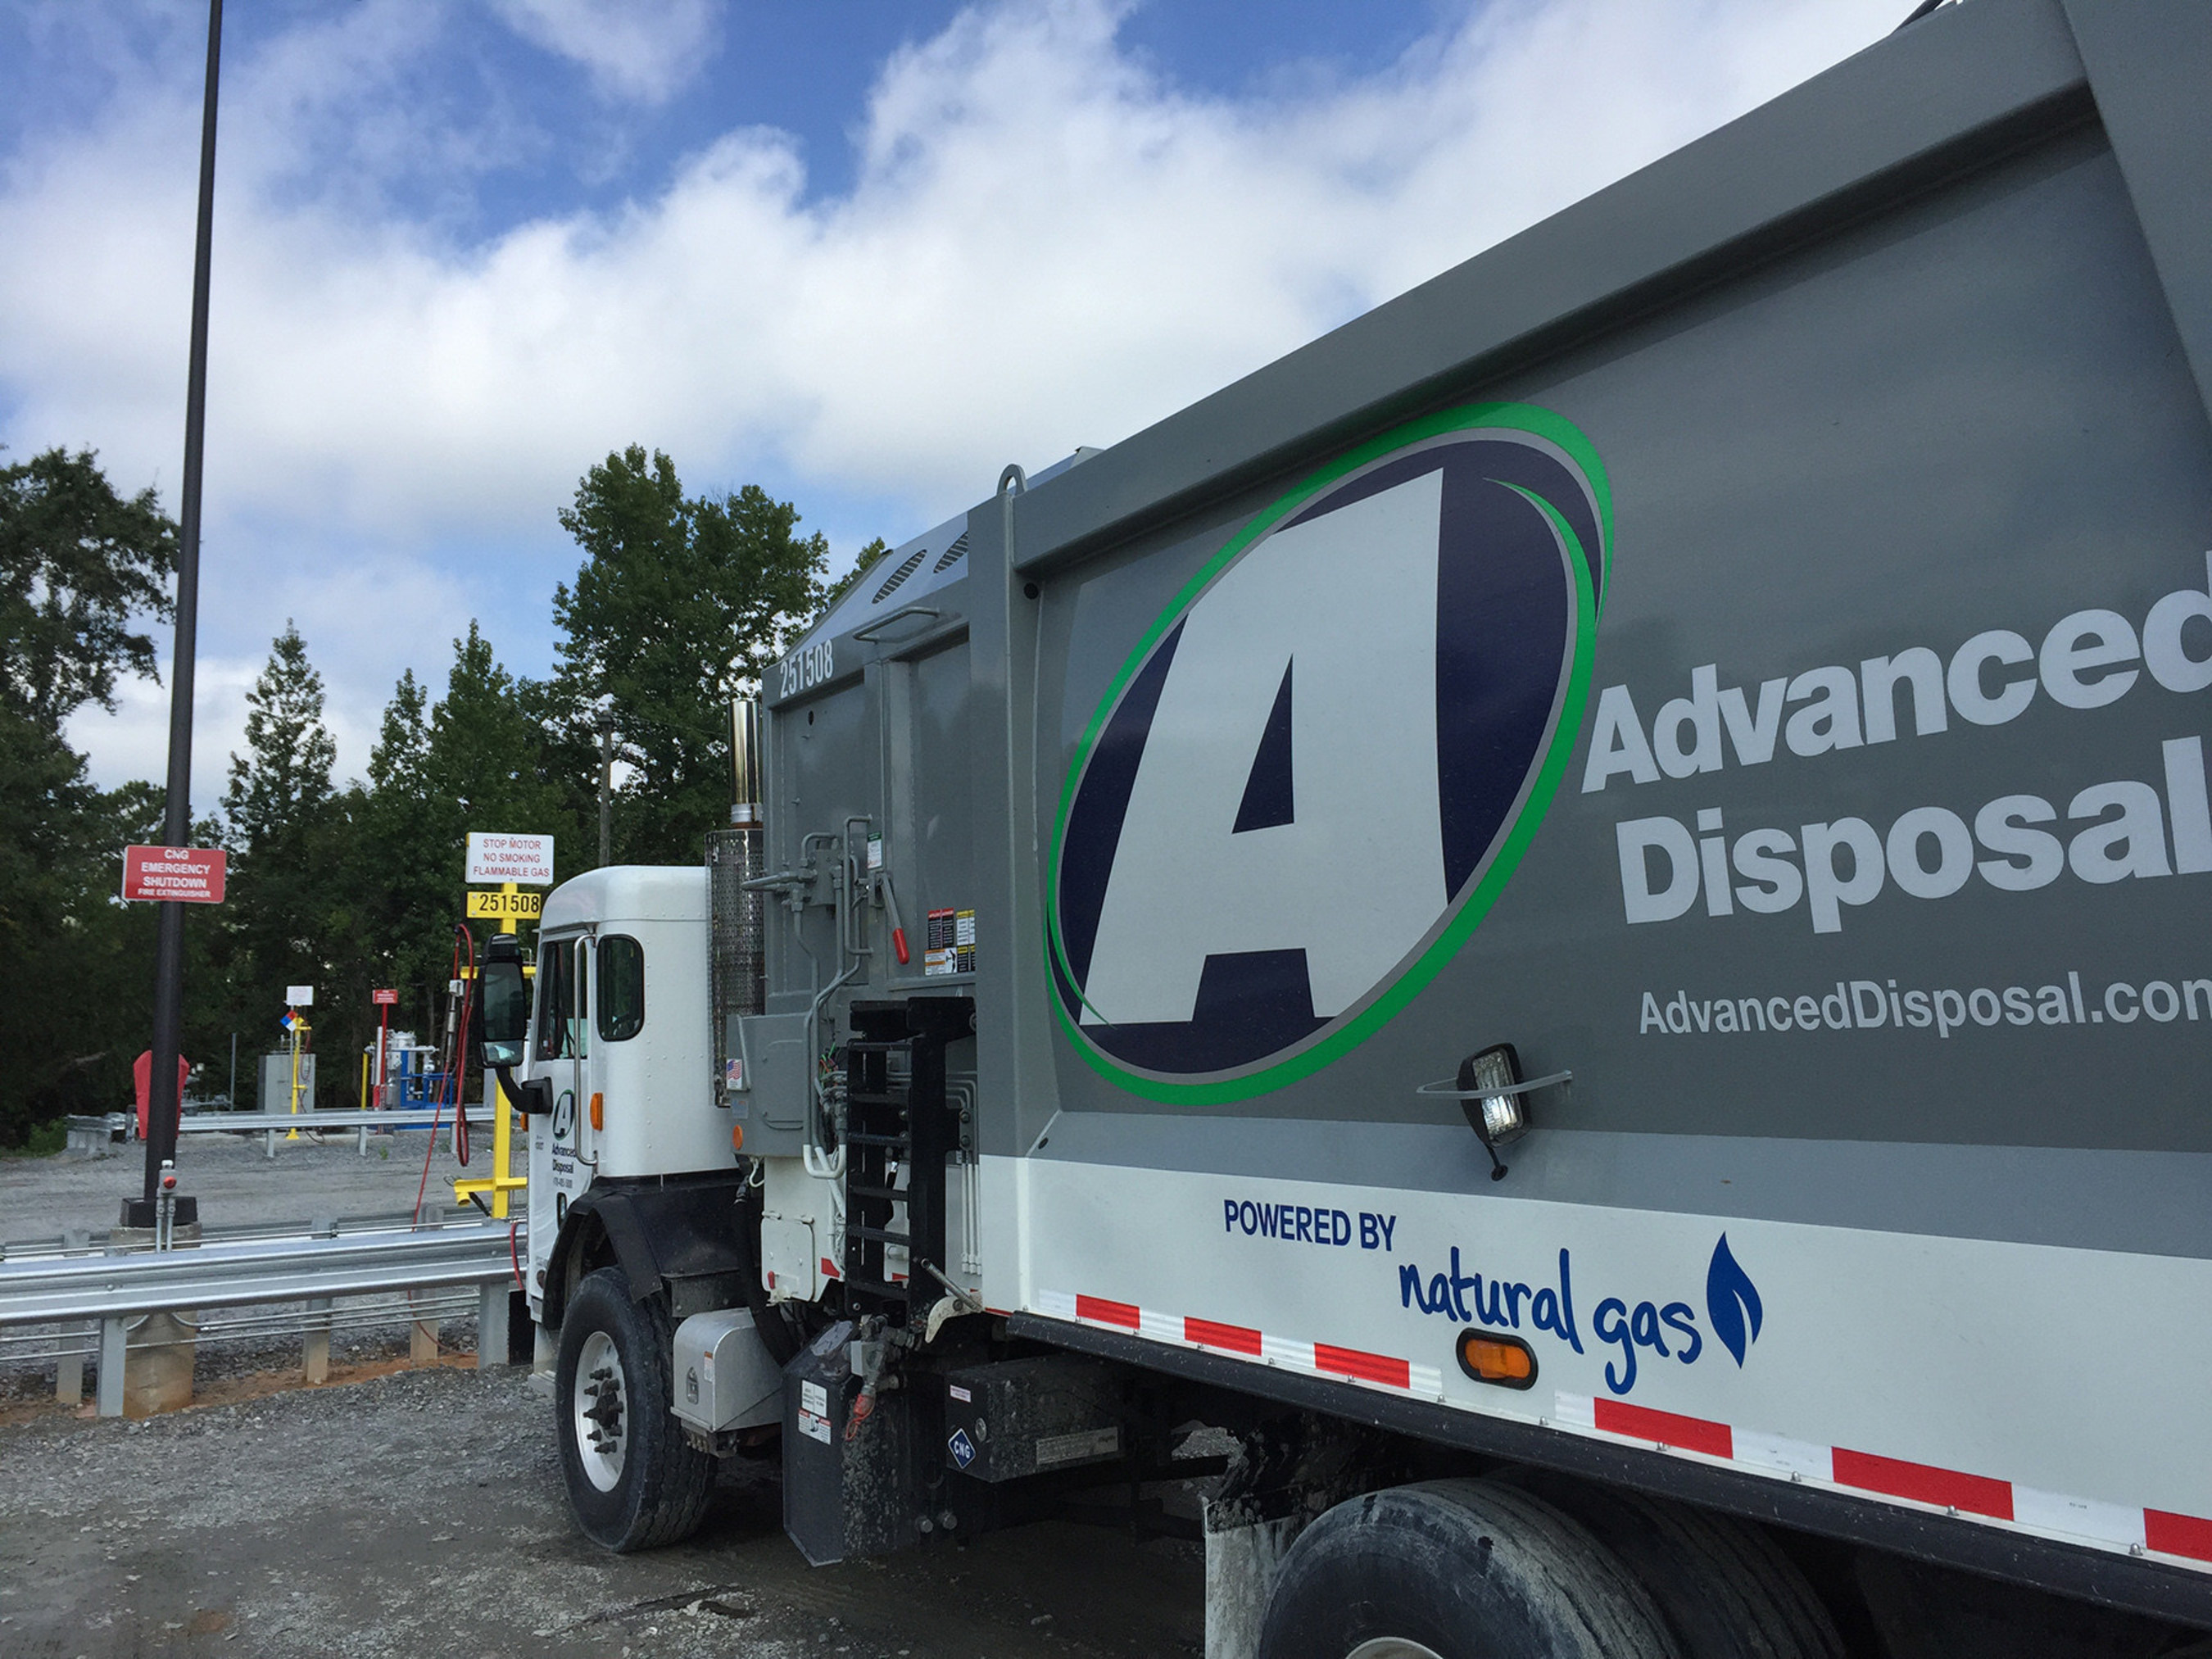 Advanced Disposal compressed natural gas (CNG) truck at a fueling station in Macon, Ga.